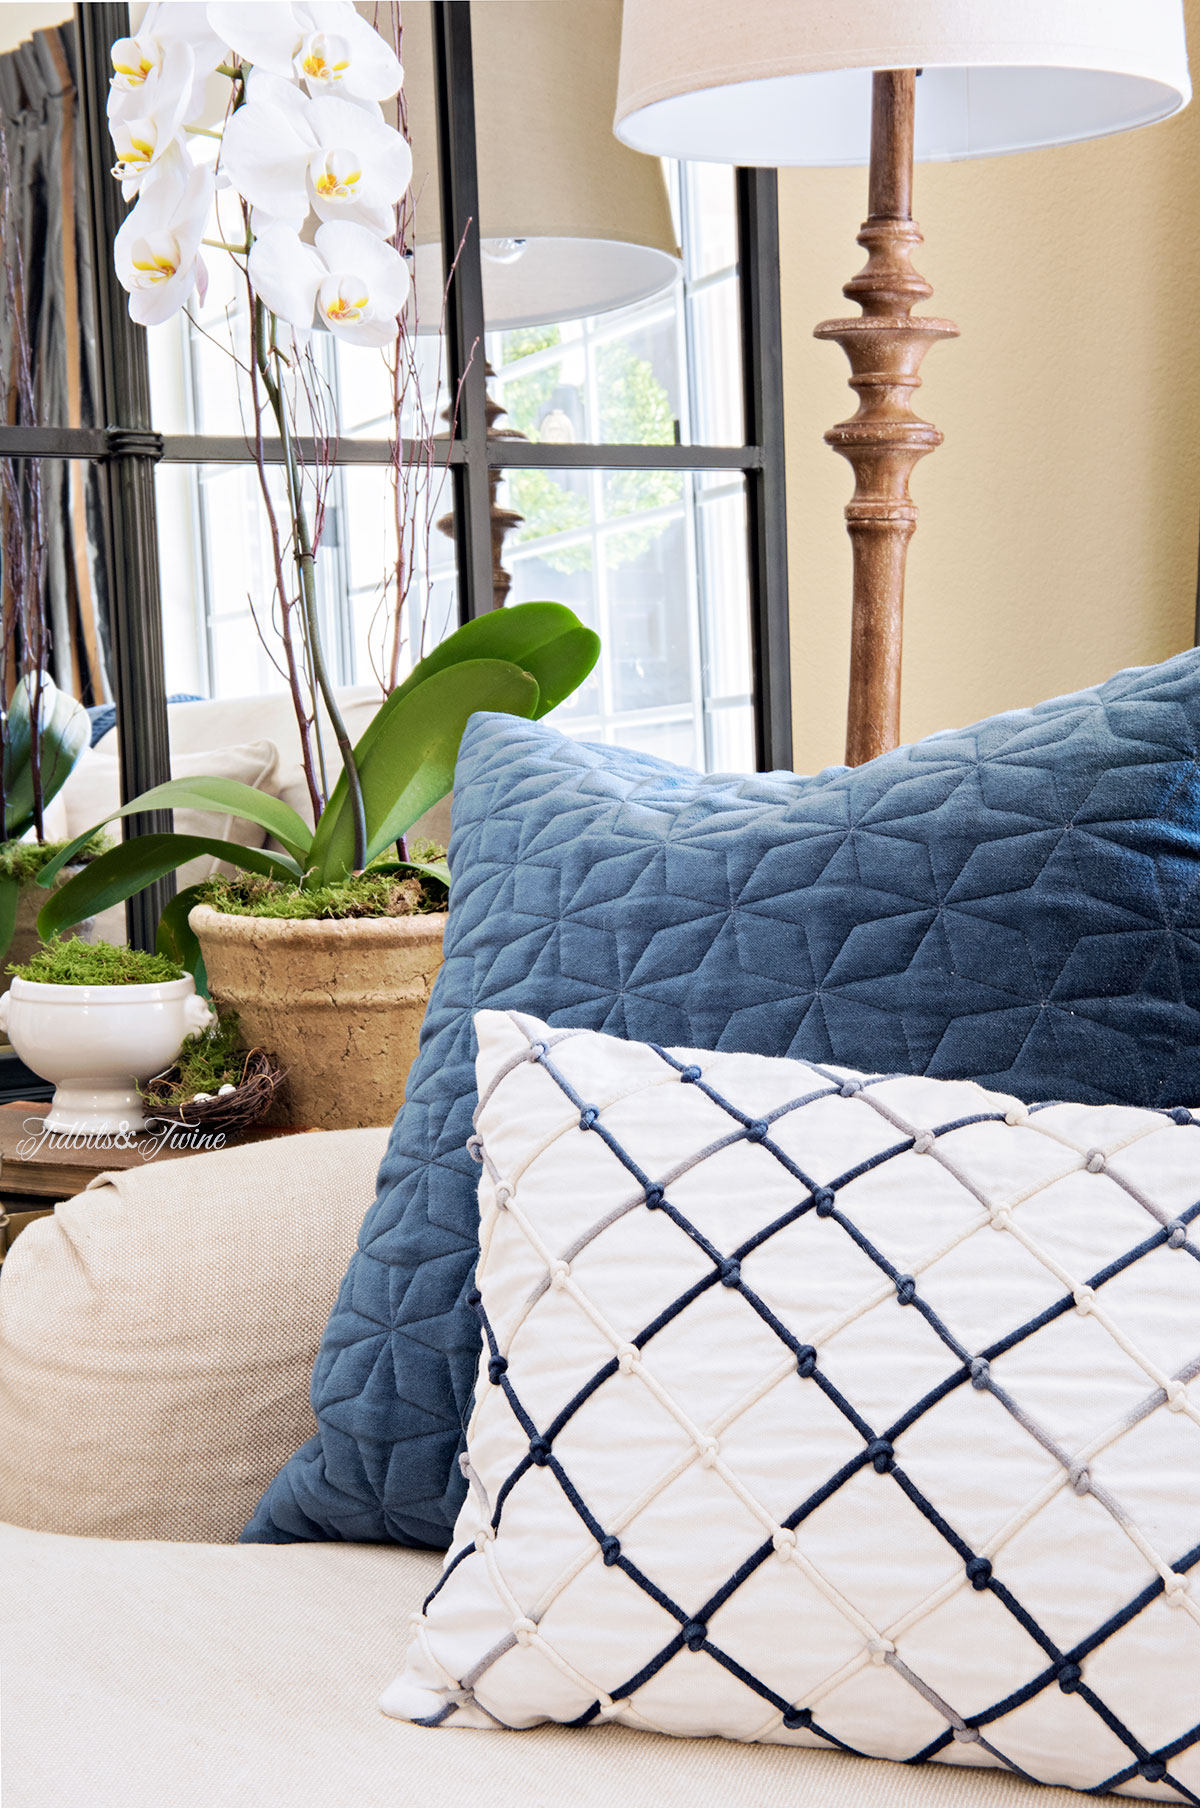 Tidbits&Twine-Spring-2015-Living-Room_Tidbits&Twine-Spring-2015-Living-Room-Blue-and-White-Pillows